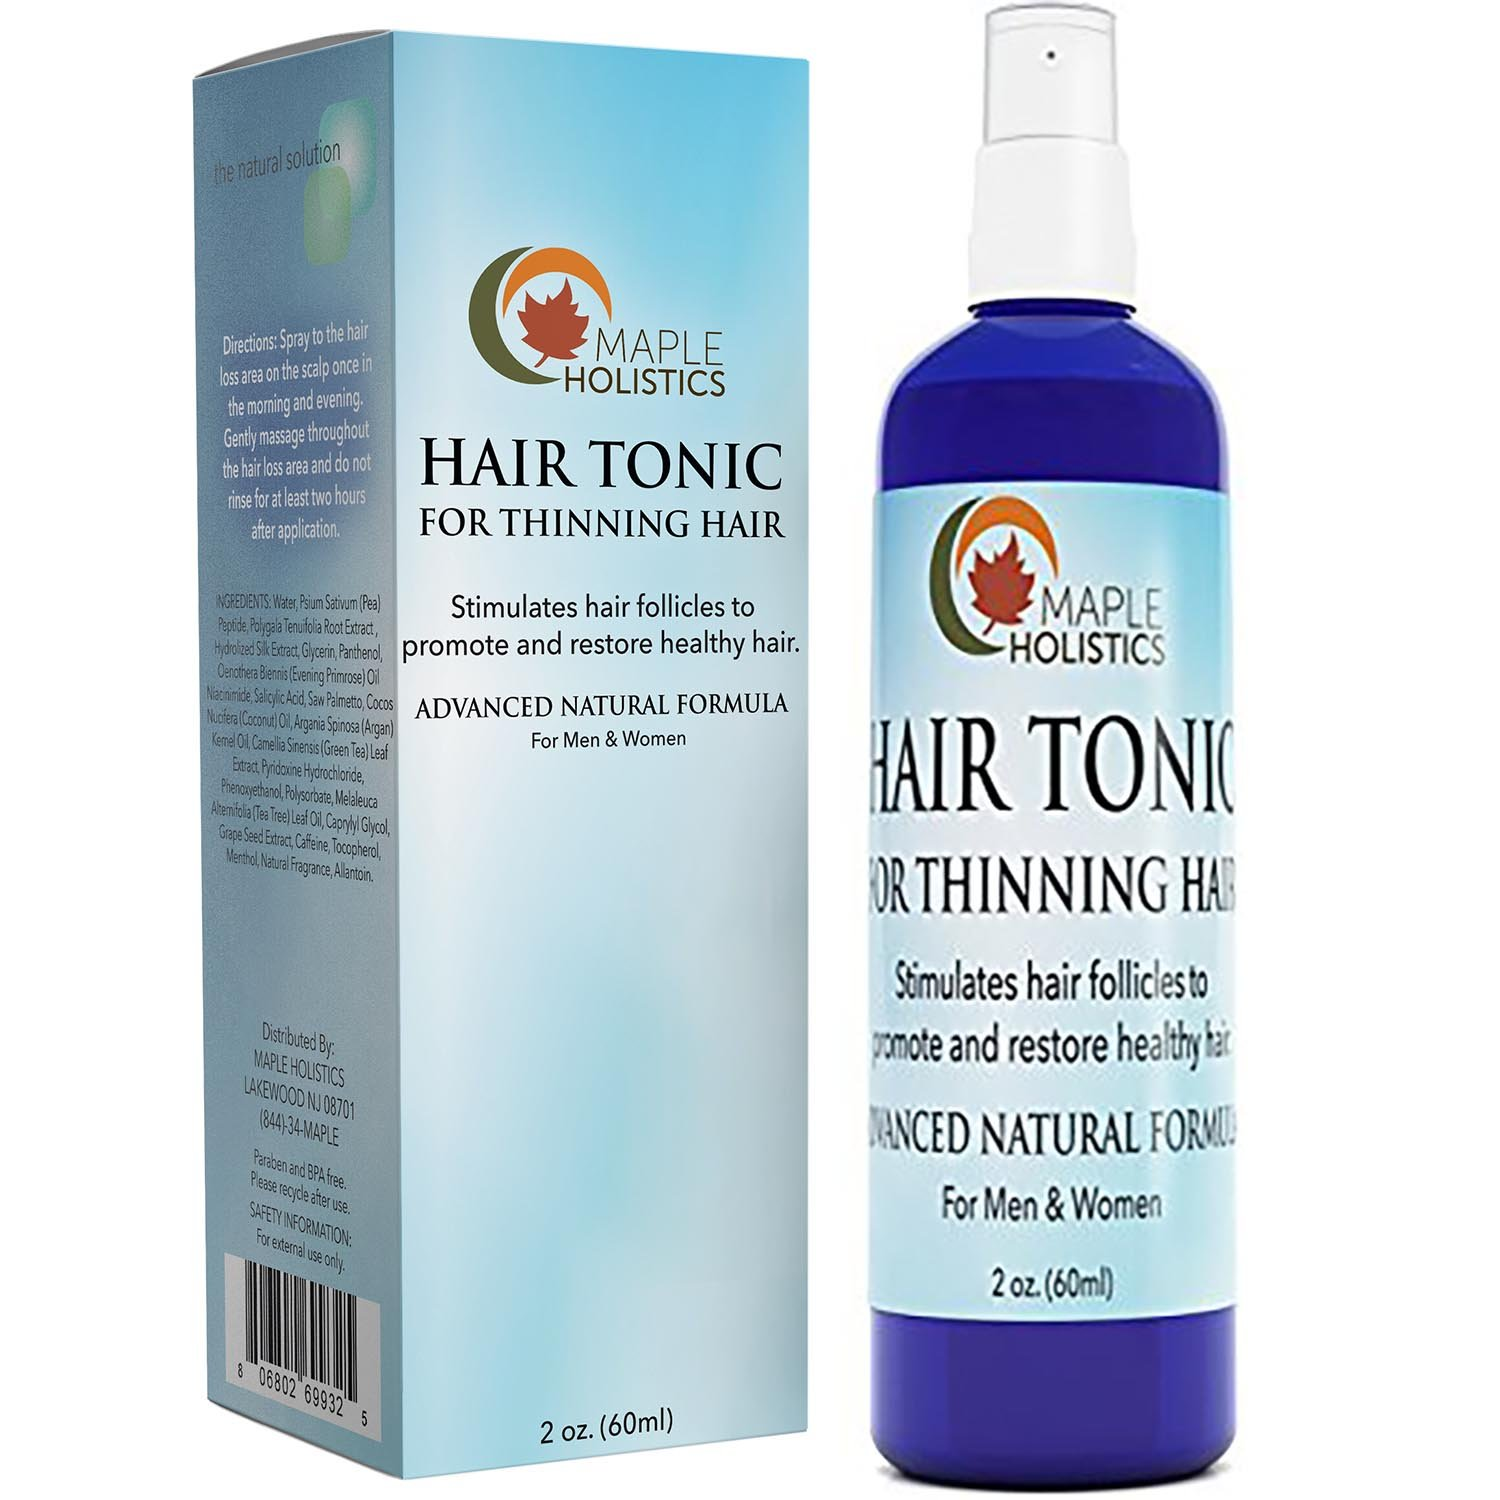 Hair Loss Restoration Treatment Shampoo For Men Women Electrical Wall Outlet Wiring Newhairstylesformen2014com Thinning Tonic Thicker Natural Thickener And Follicle Stimulator Growth